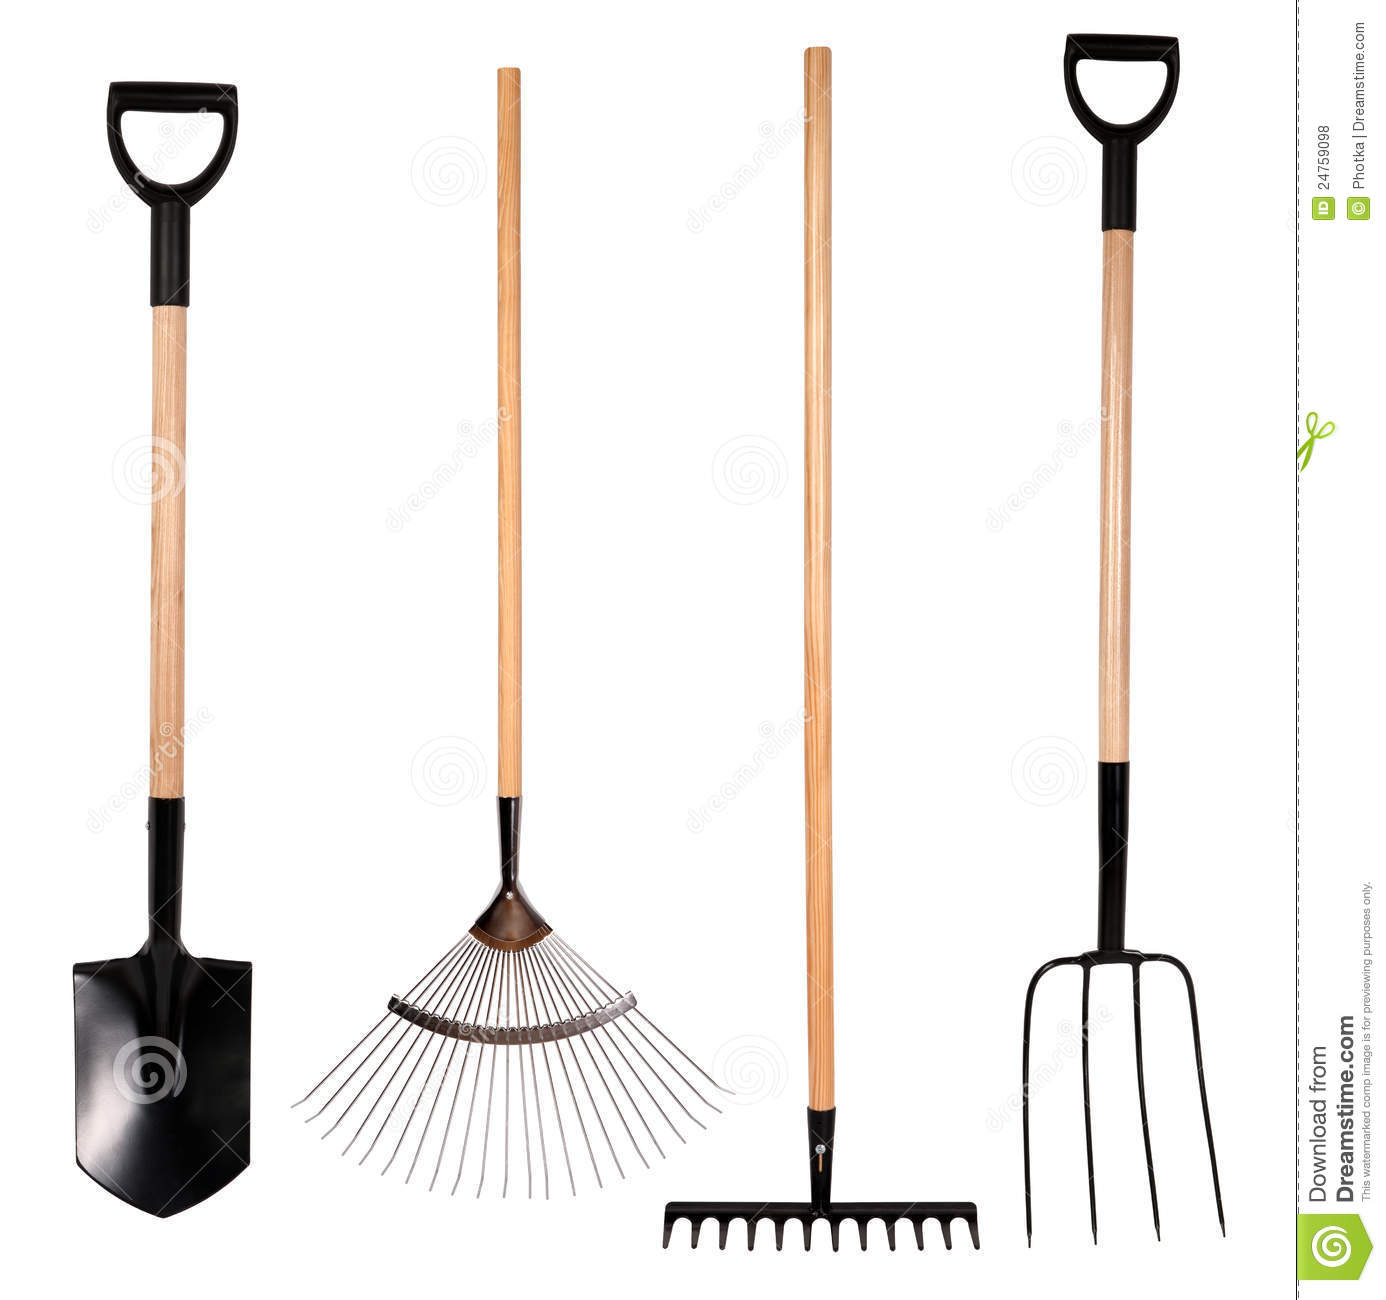 Garden tools clipart clipart suggest for Tools for backyard gardening